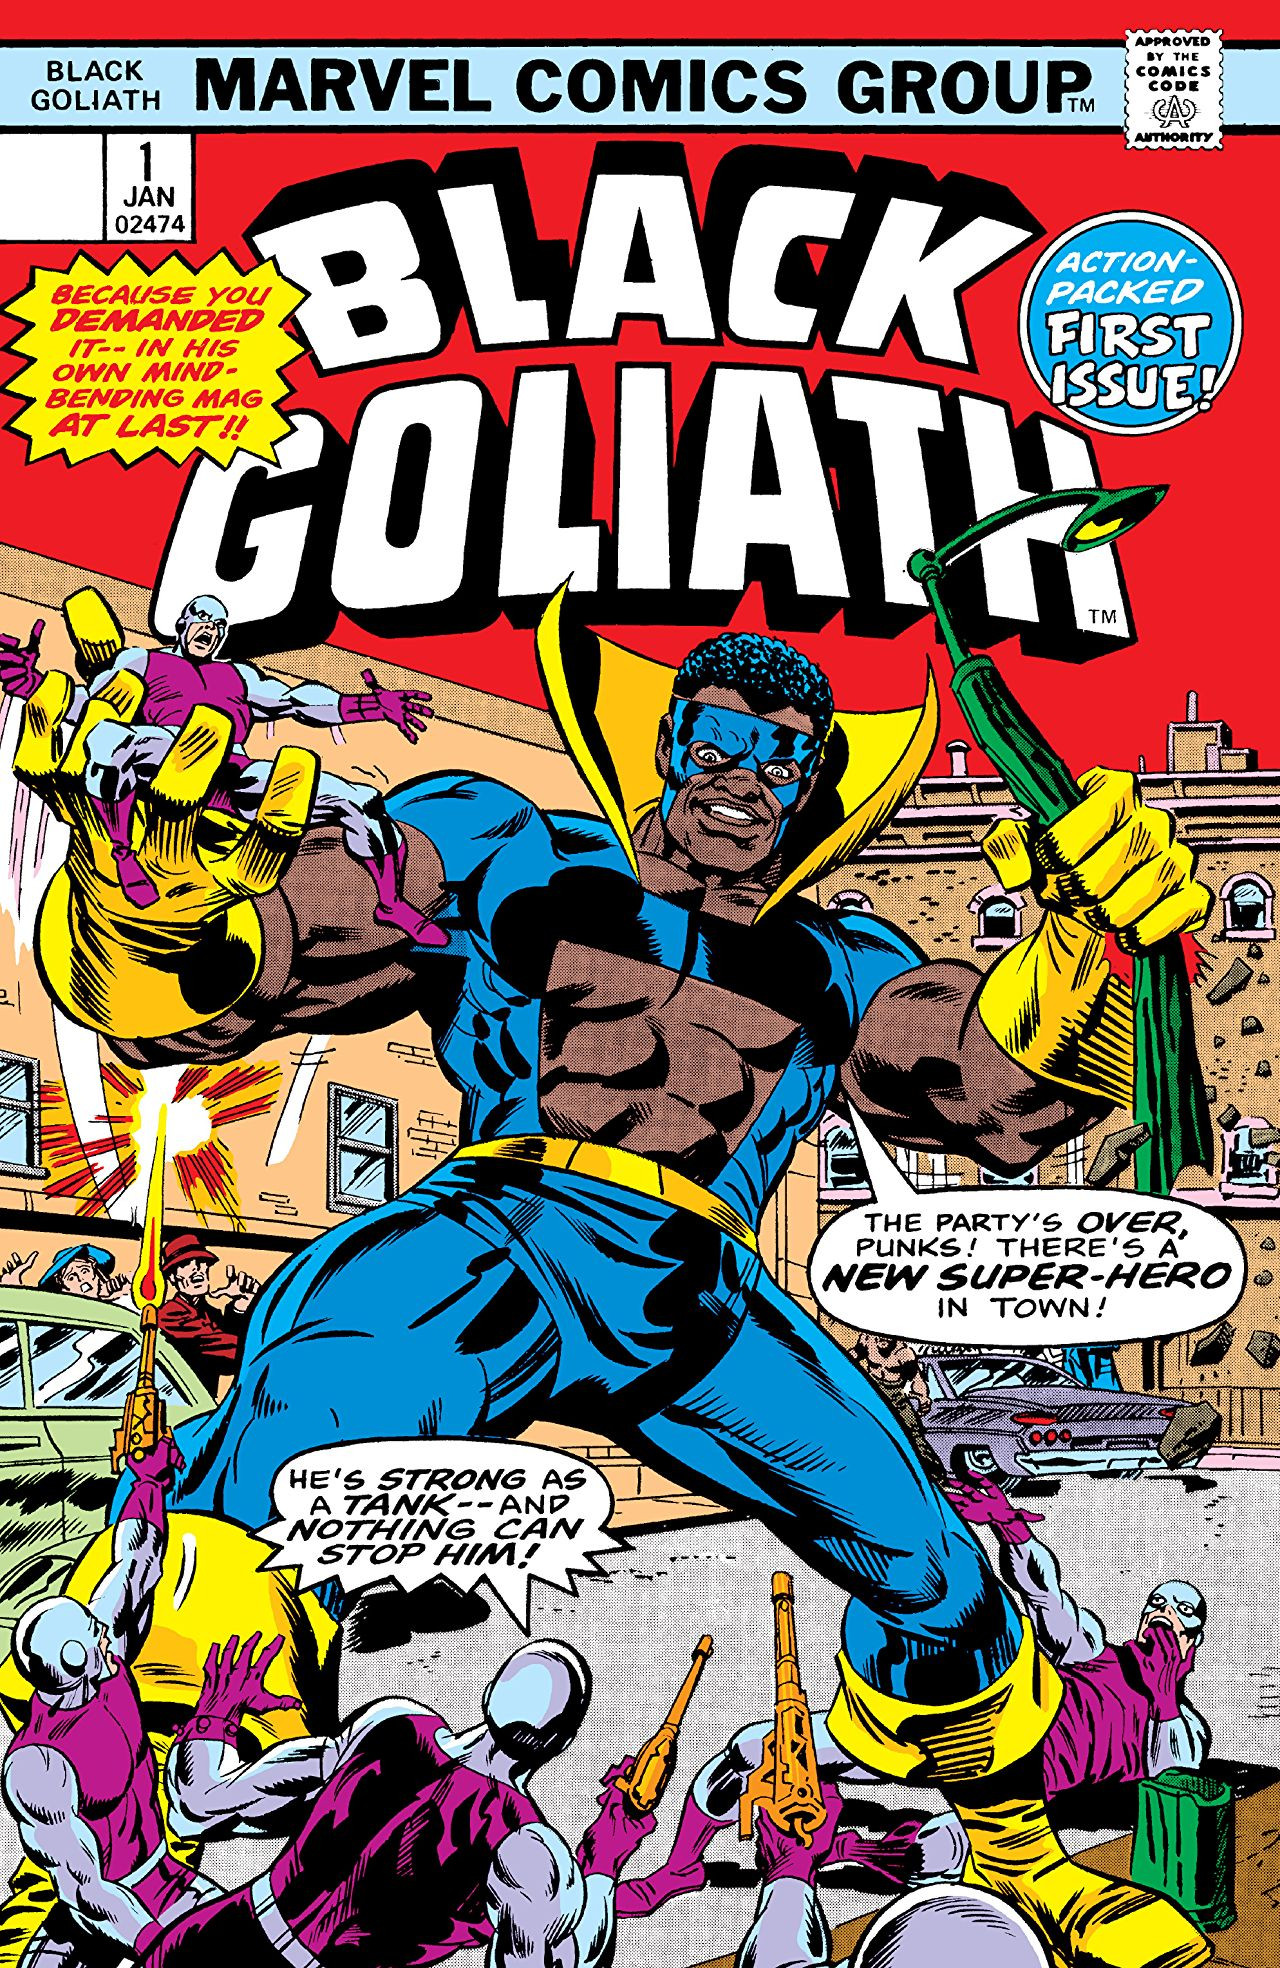 Image result for Black Goliath collection